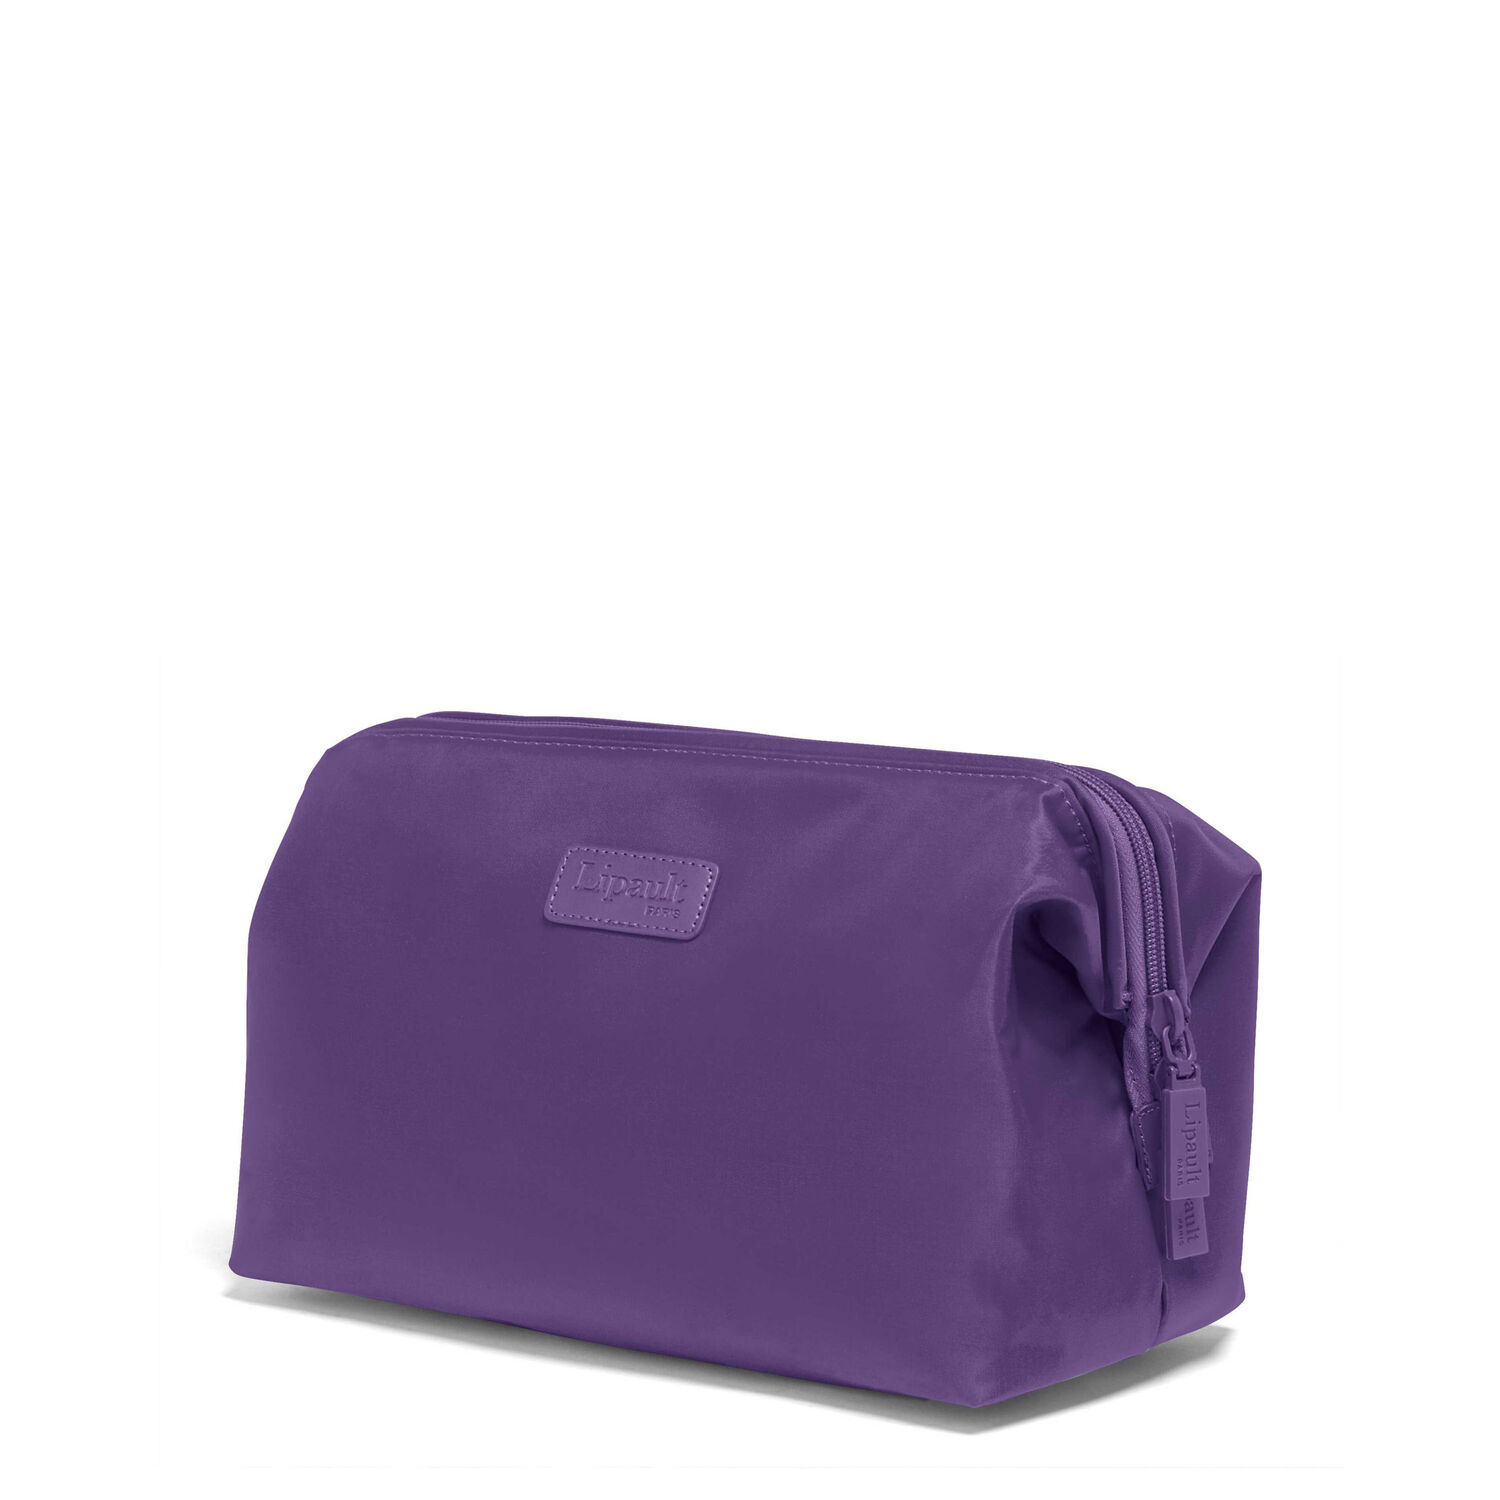 Lipault Travel Accessories 12 quot  Toiletry Kit in the color Light ... 83f62b93514fc